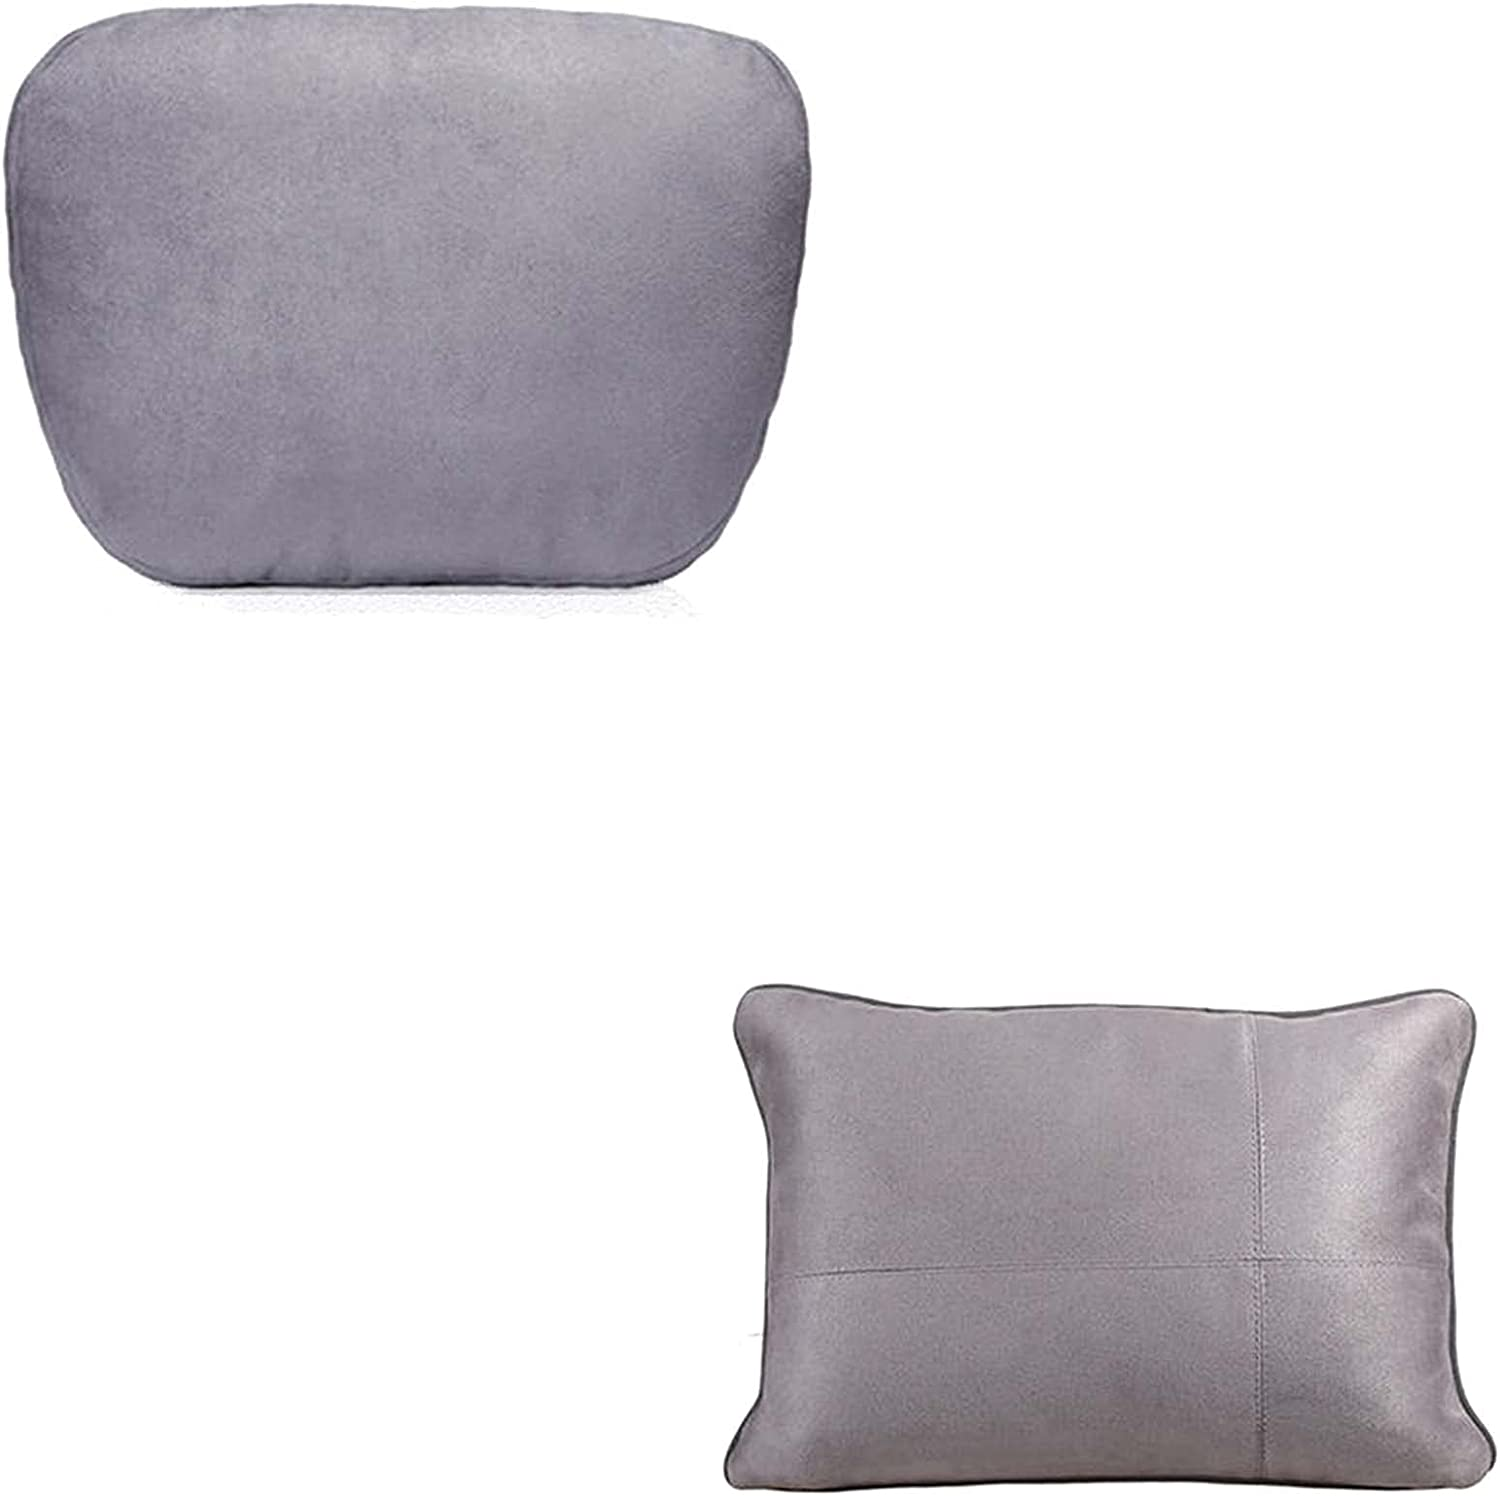 GXQ-DL01 Cushion is Used wholesale for Daily bargain sale Memory Cervical Soft Support Spine